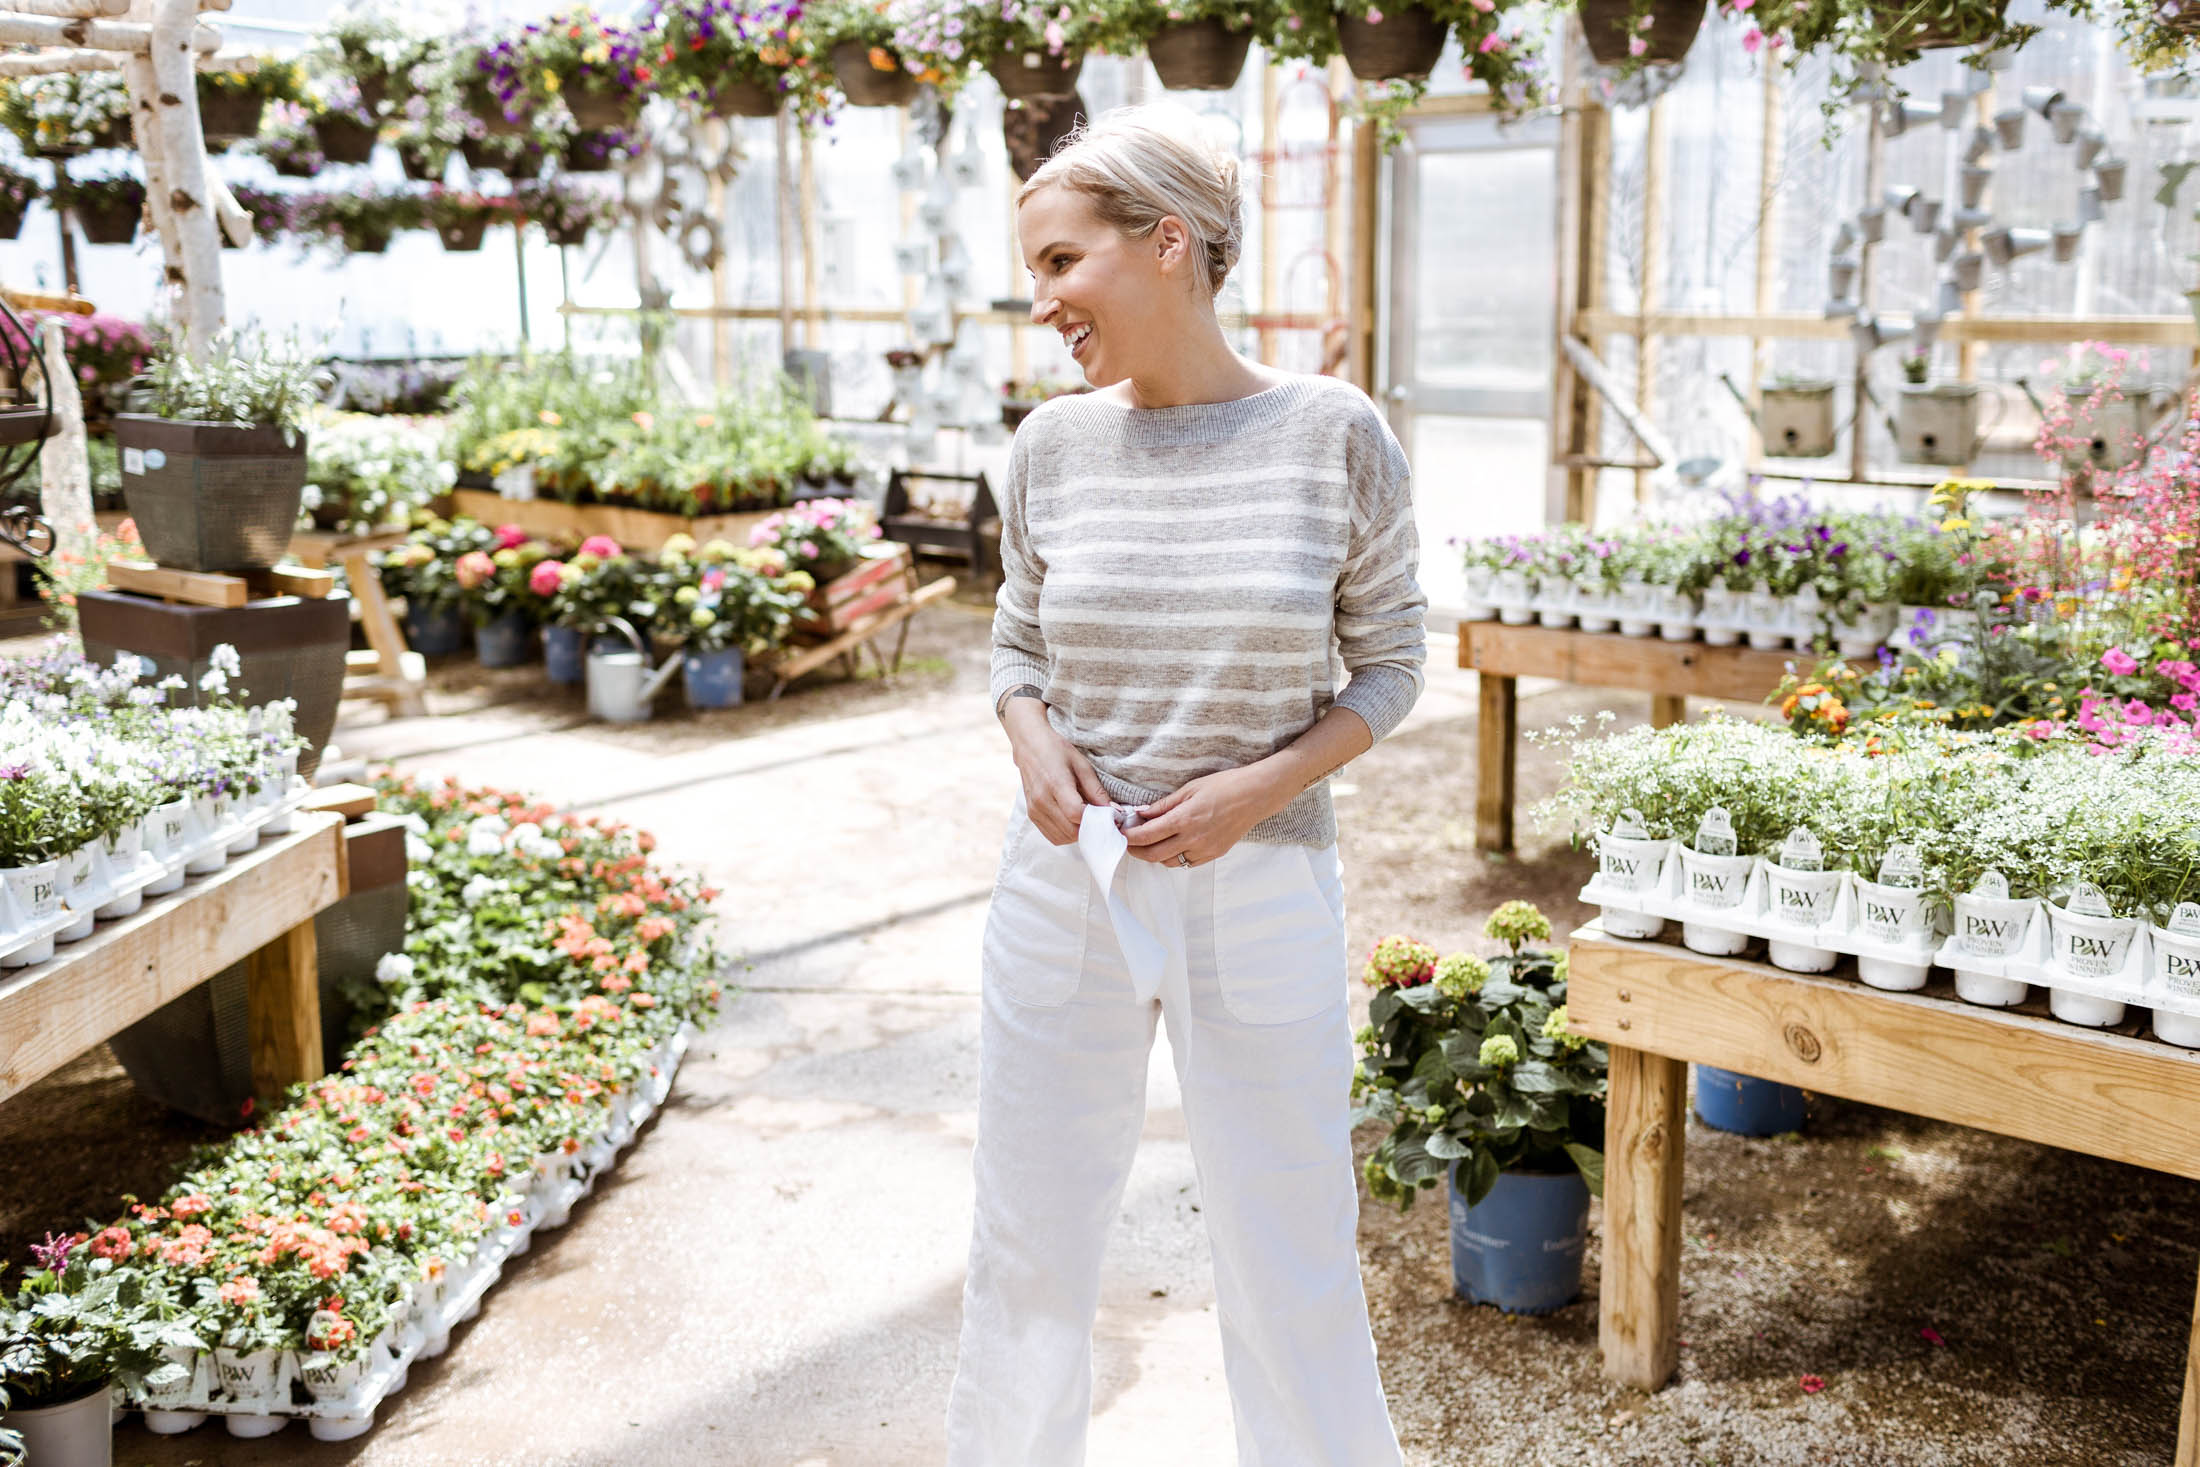 A cool, casual combo for spring & summer that never goes of style? White linen pants. Dress 'em or dress 'em down, they're a timeless go-to. See how.